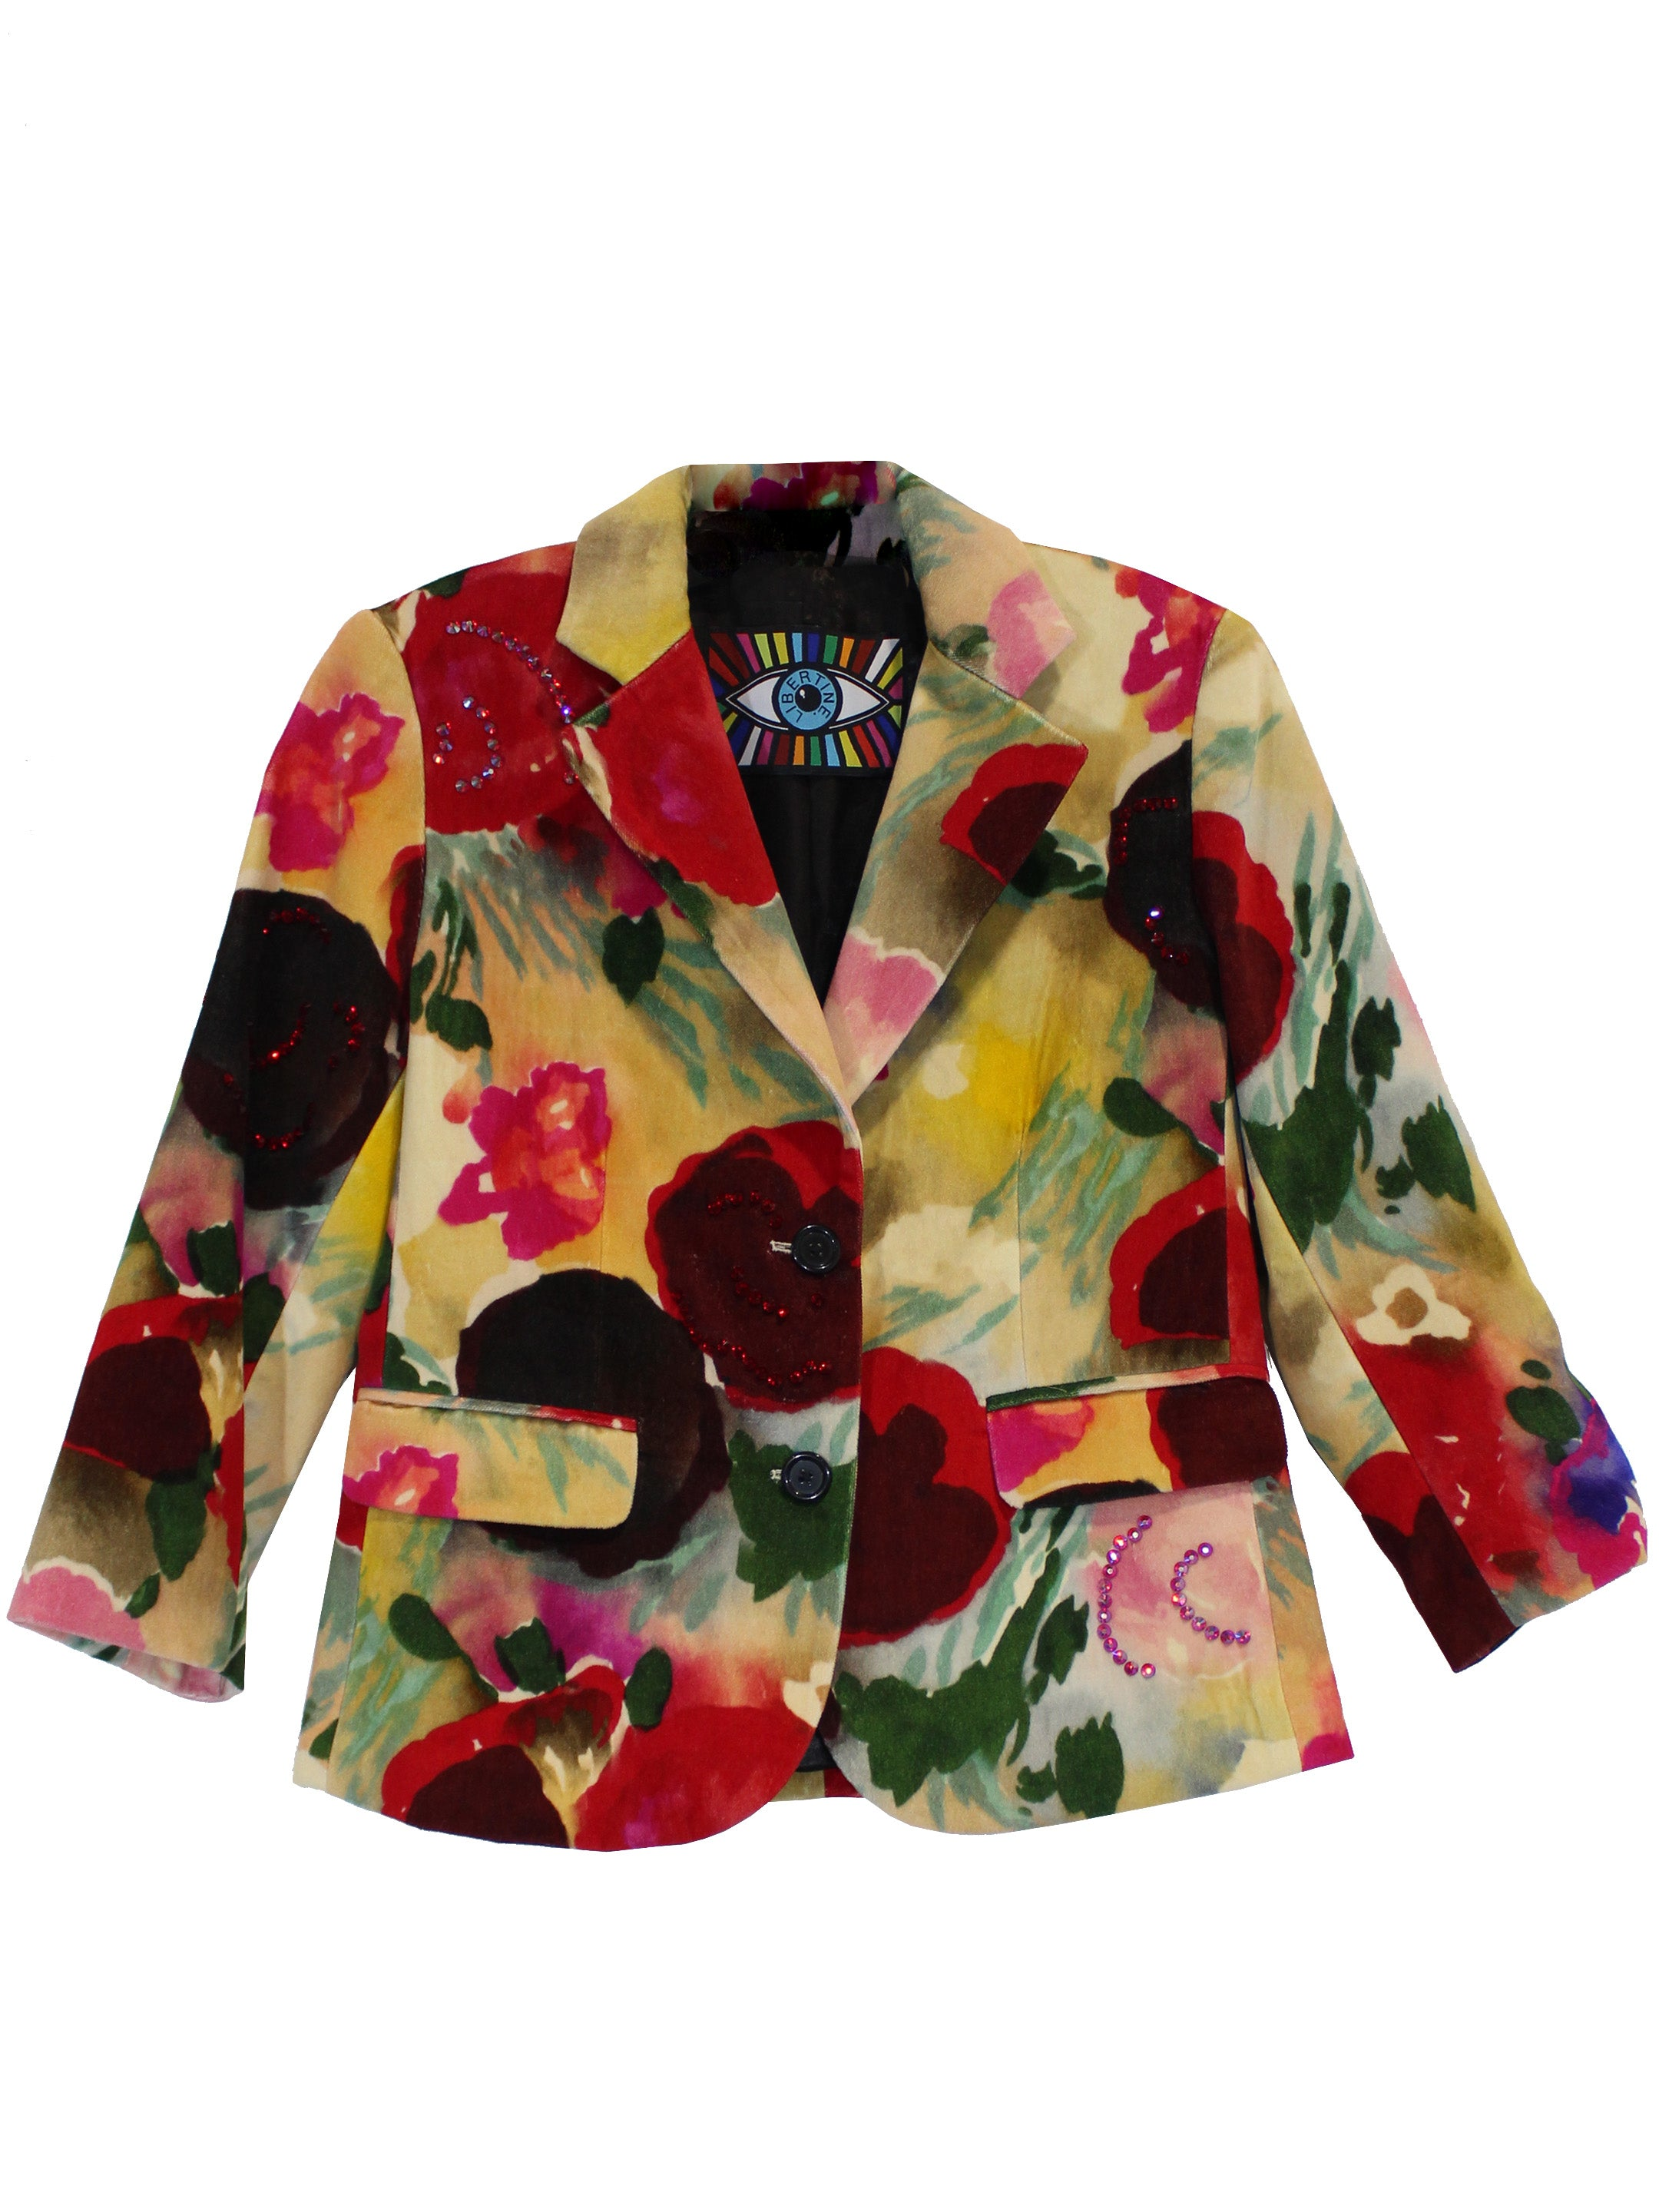 """BLOOMSBURY GROUP"" PAINTED FLOWERS BLAZER WITH CRYSTALS - Women's Jackets & Coats - Libertine"